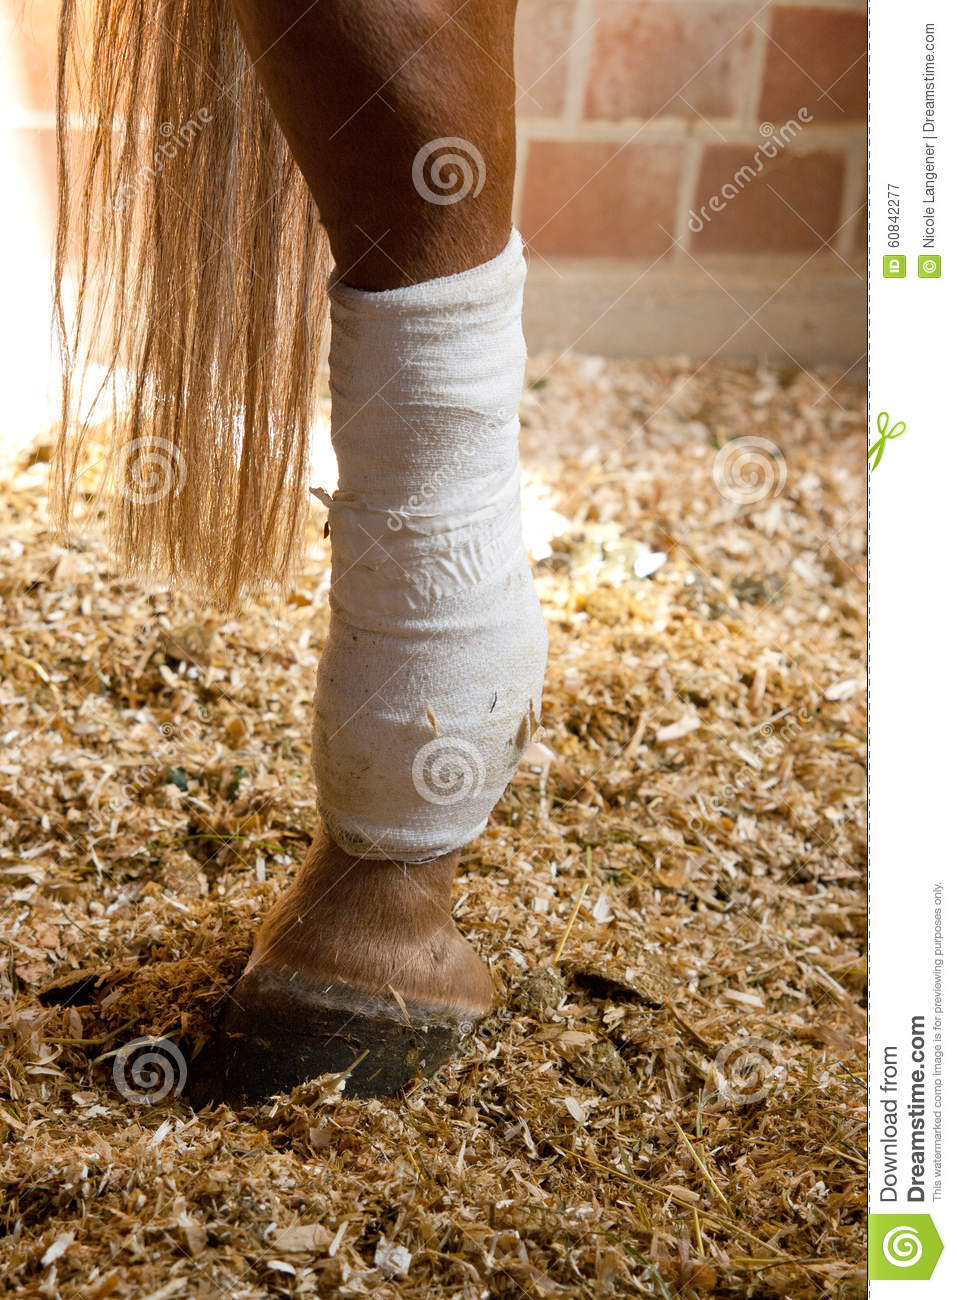 Connected horses leg